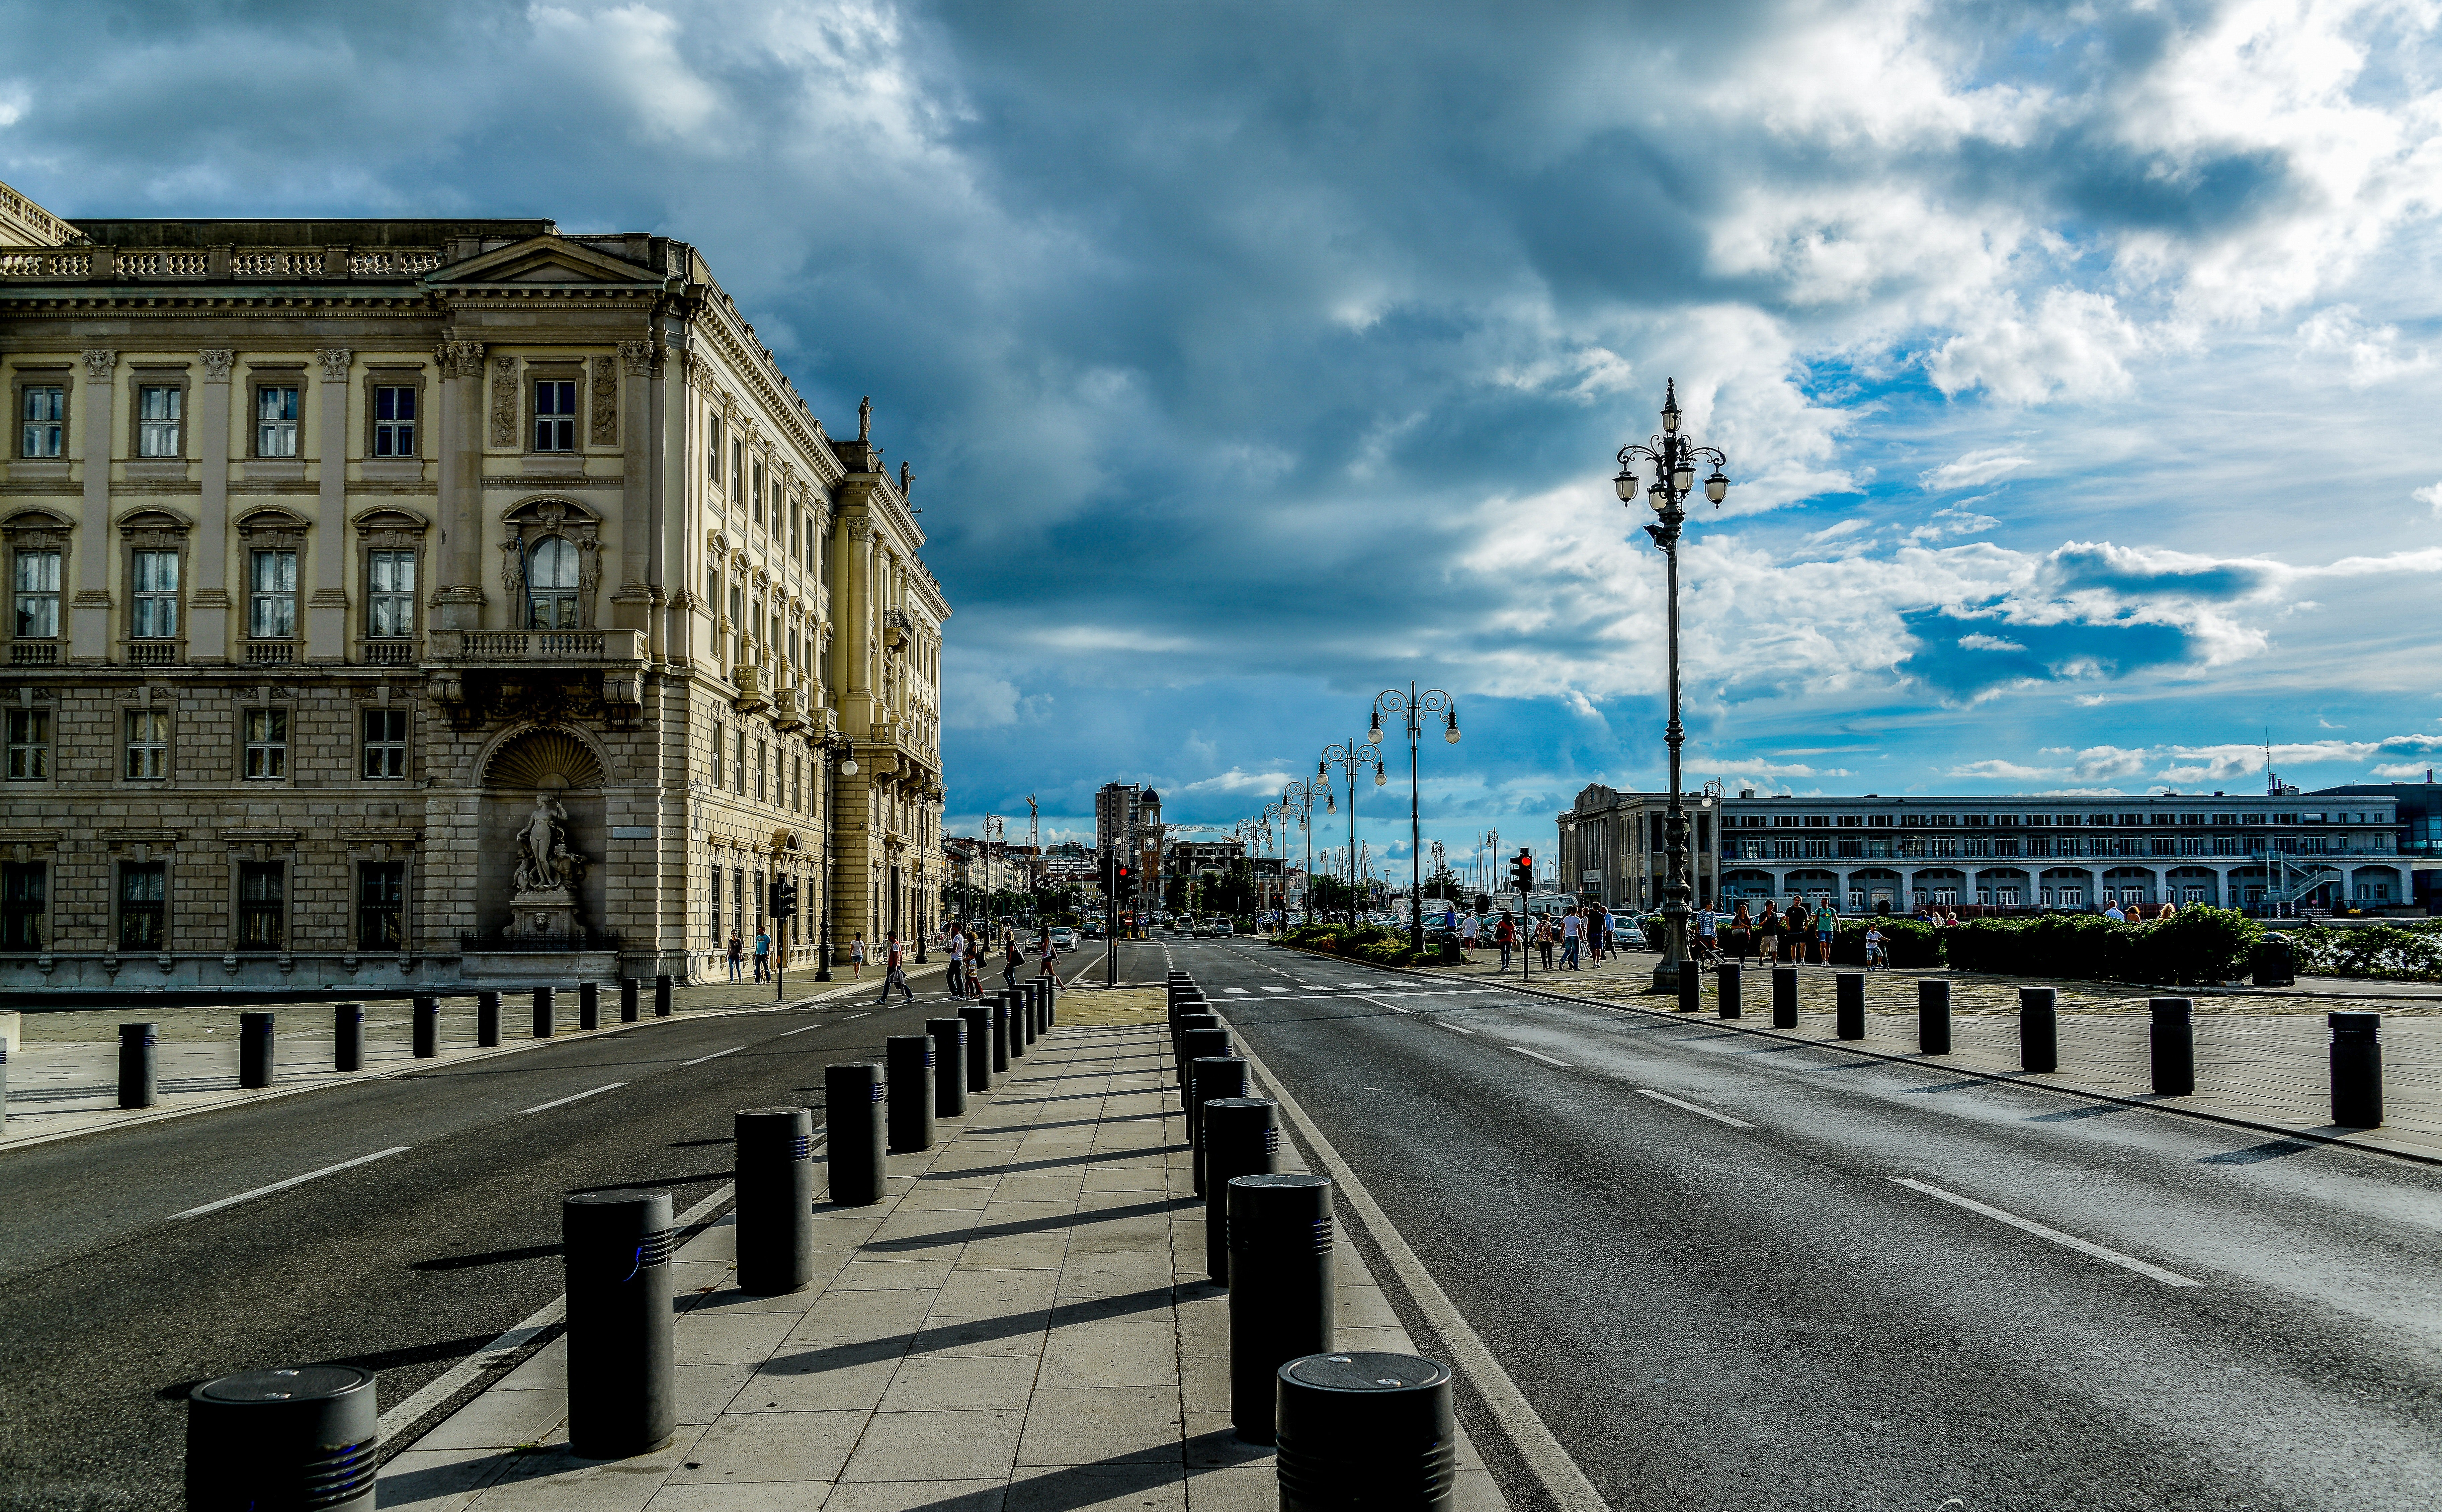 View of City Street Against Cloudy Sky, Architecture, Transportation system, Town, Tourism, HQ Photo